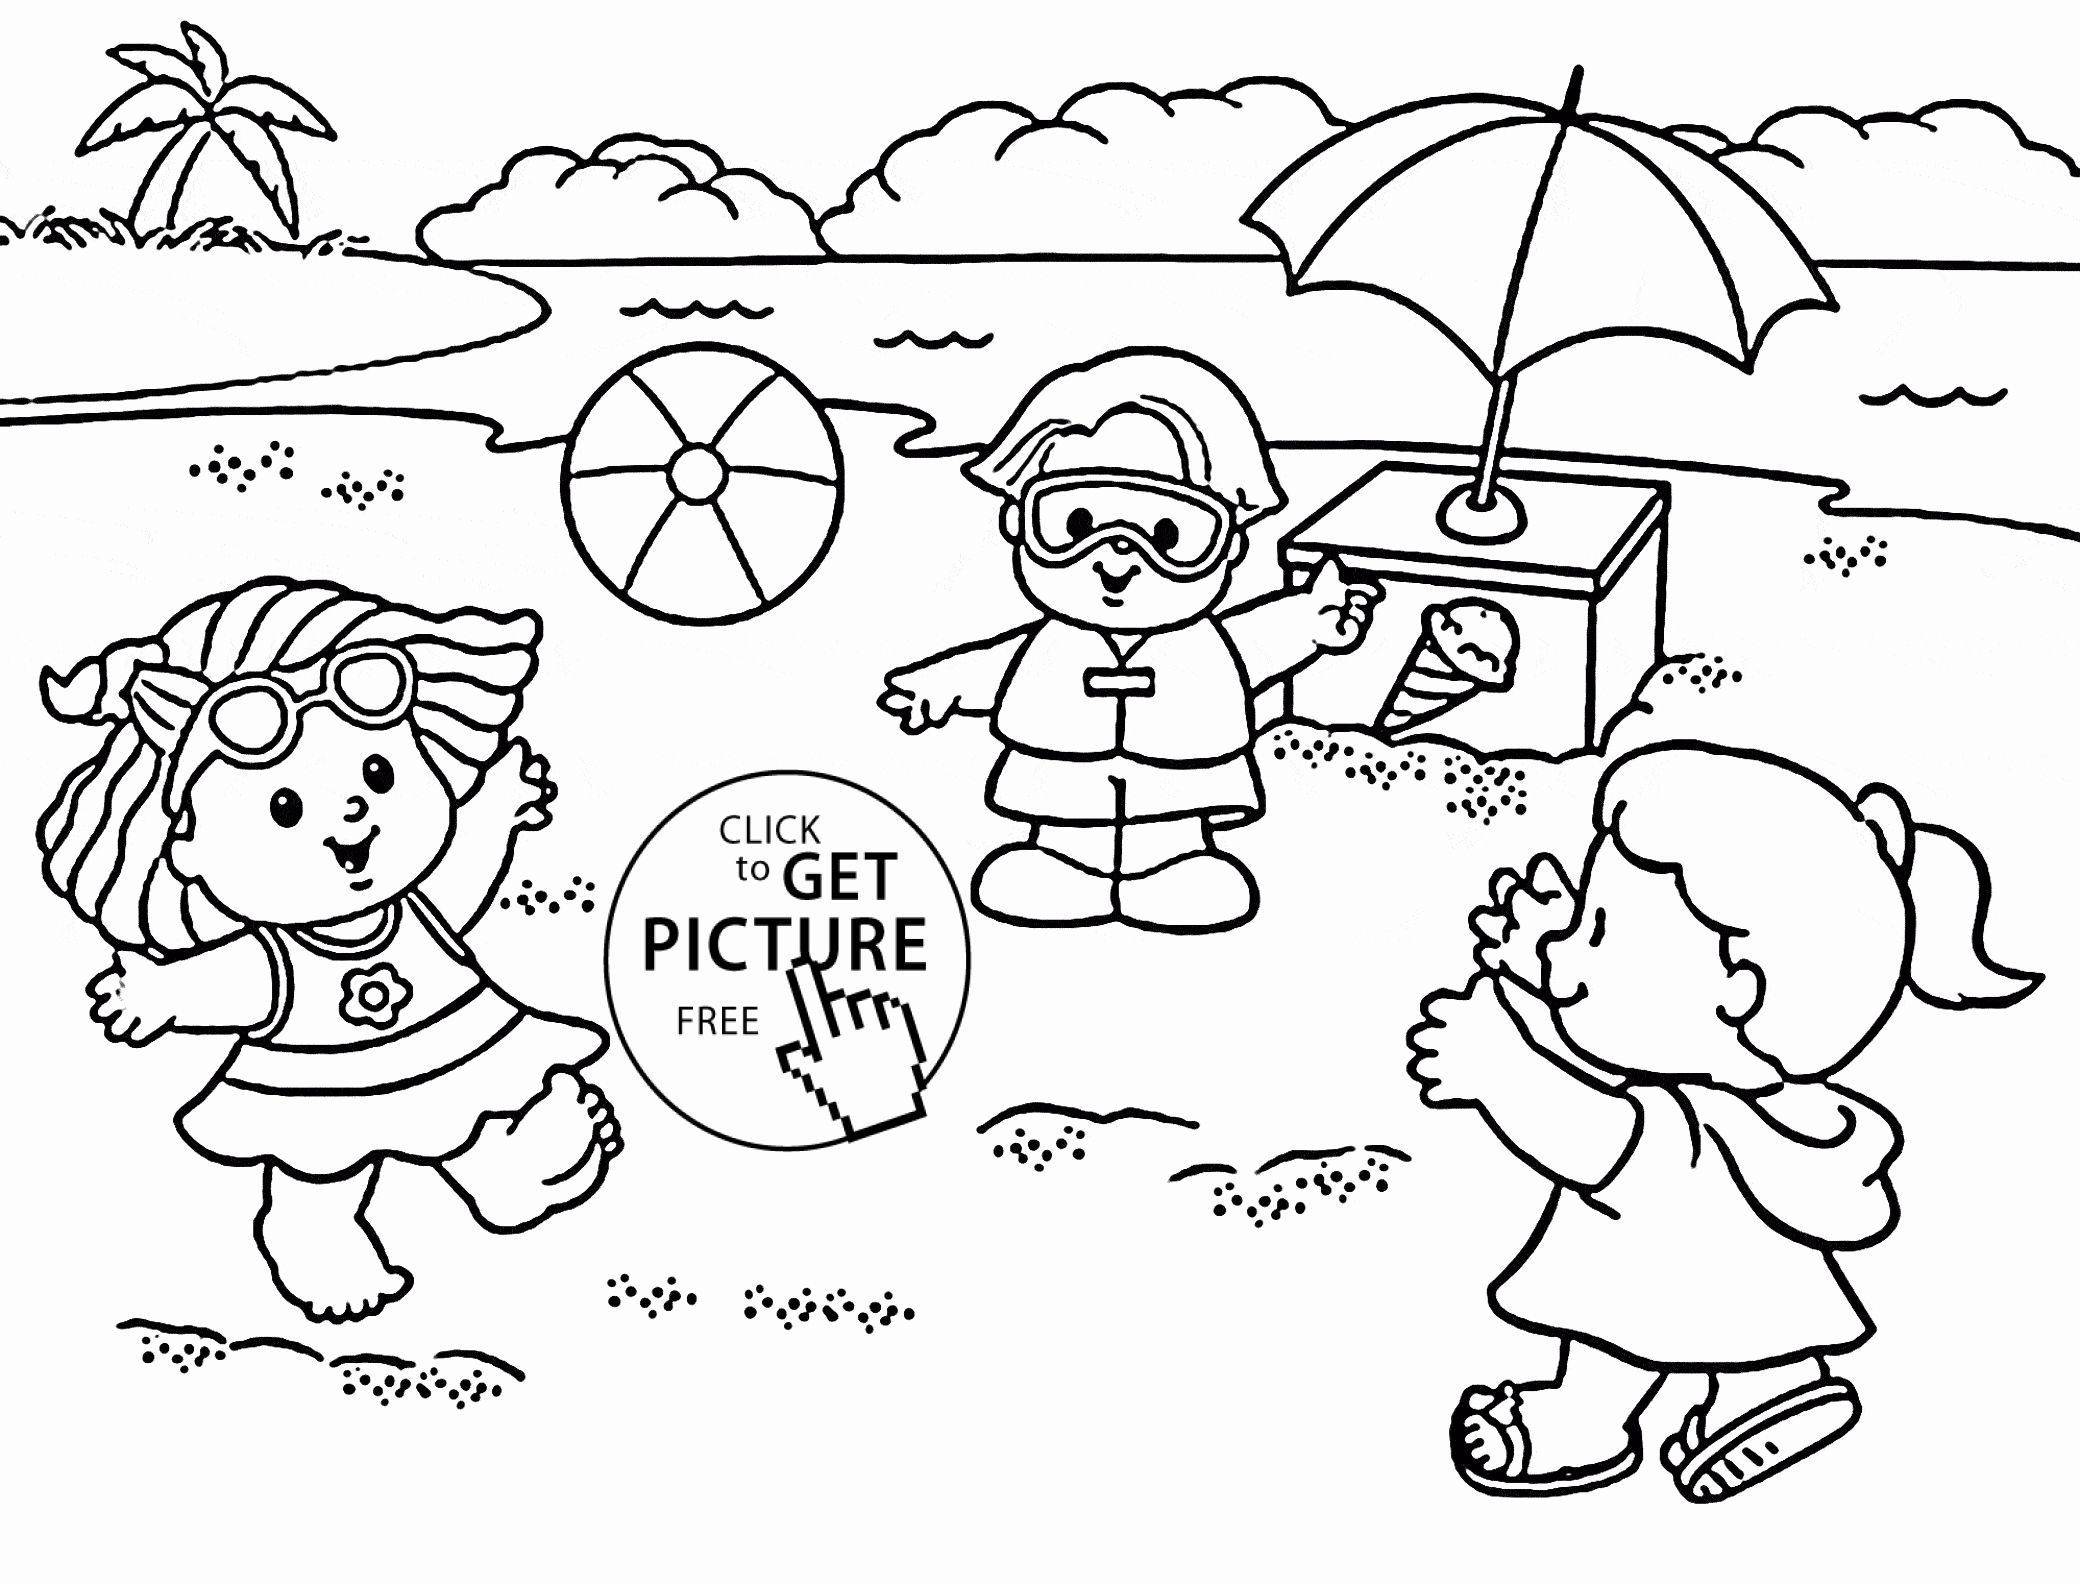 Summer Coloring Pages For Kids Inspirational 27 Summer Season Coloring Pages Part 2 Summer Coloring Pages Beach Coloring Pages Coloring Pages For Kids